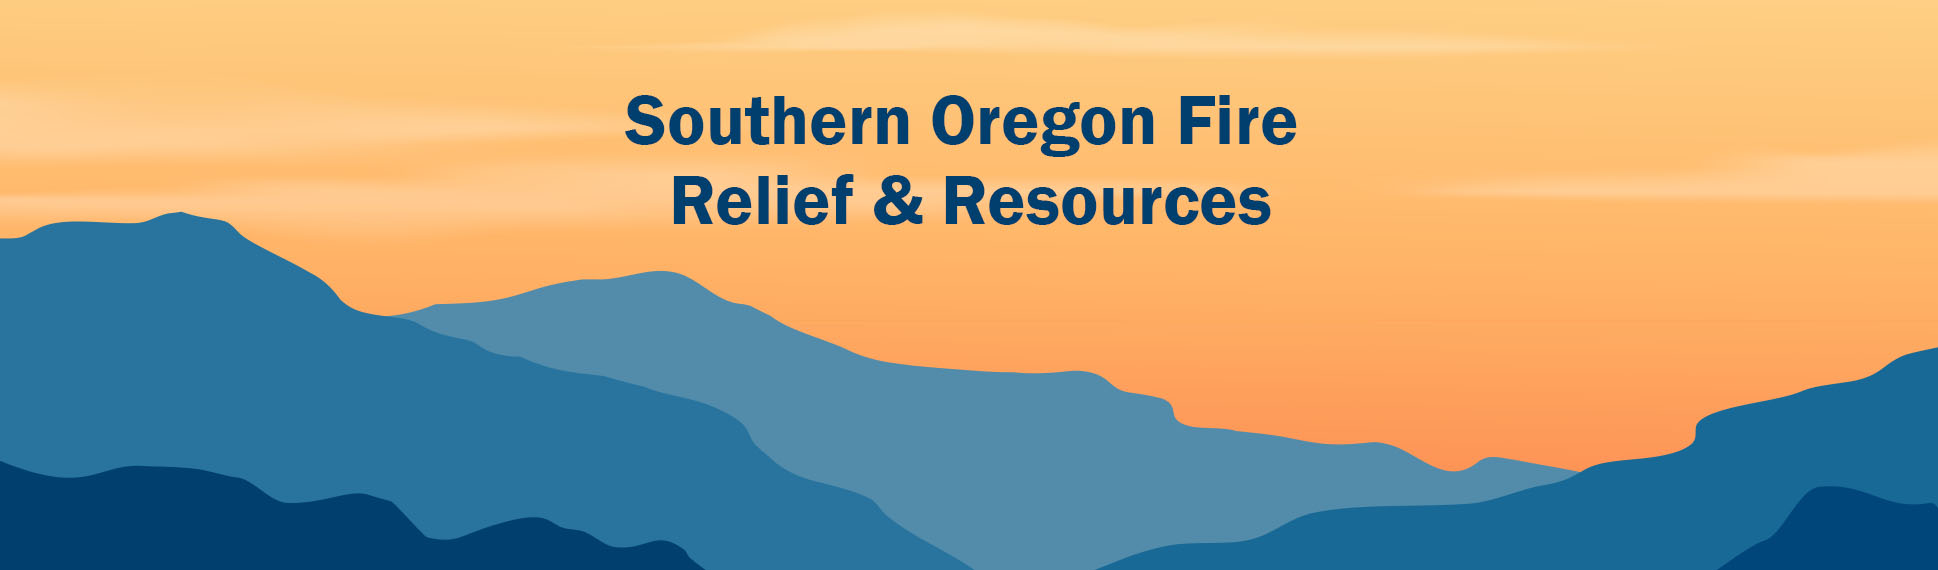 Southern Oregon Fire Relief